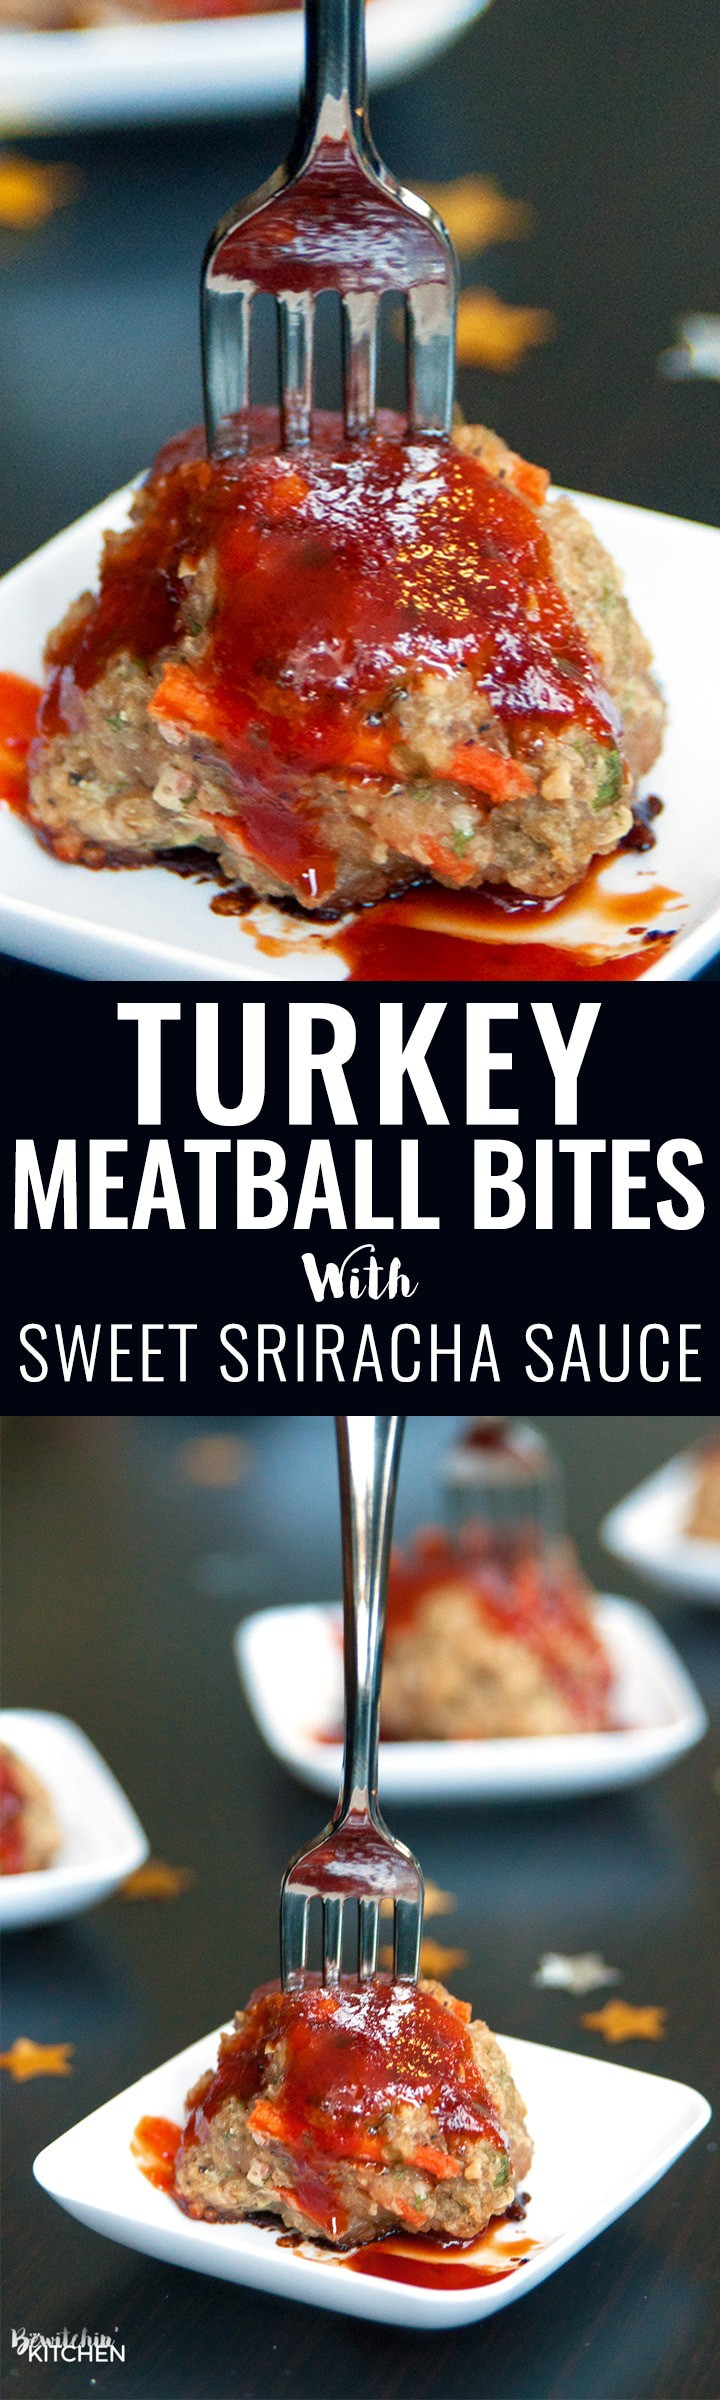 Turkey Meatball Bites. This appetizer is a great healthy party recipe or makes a delicious healthy dinner main dish. Ground turkey, hidden vegetables and a sweet sriracha sauce that has 75% LESS sugar. | thebewitchinkitchen.com